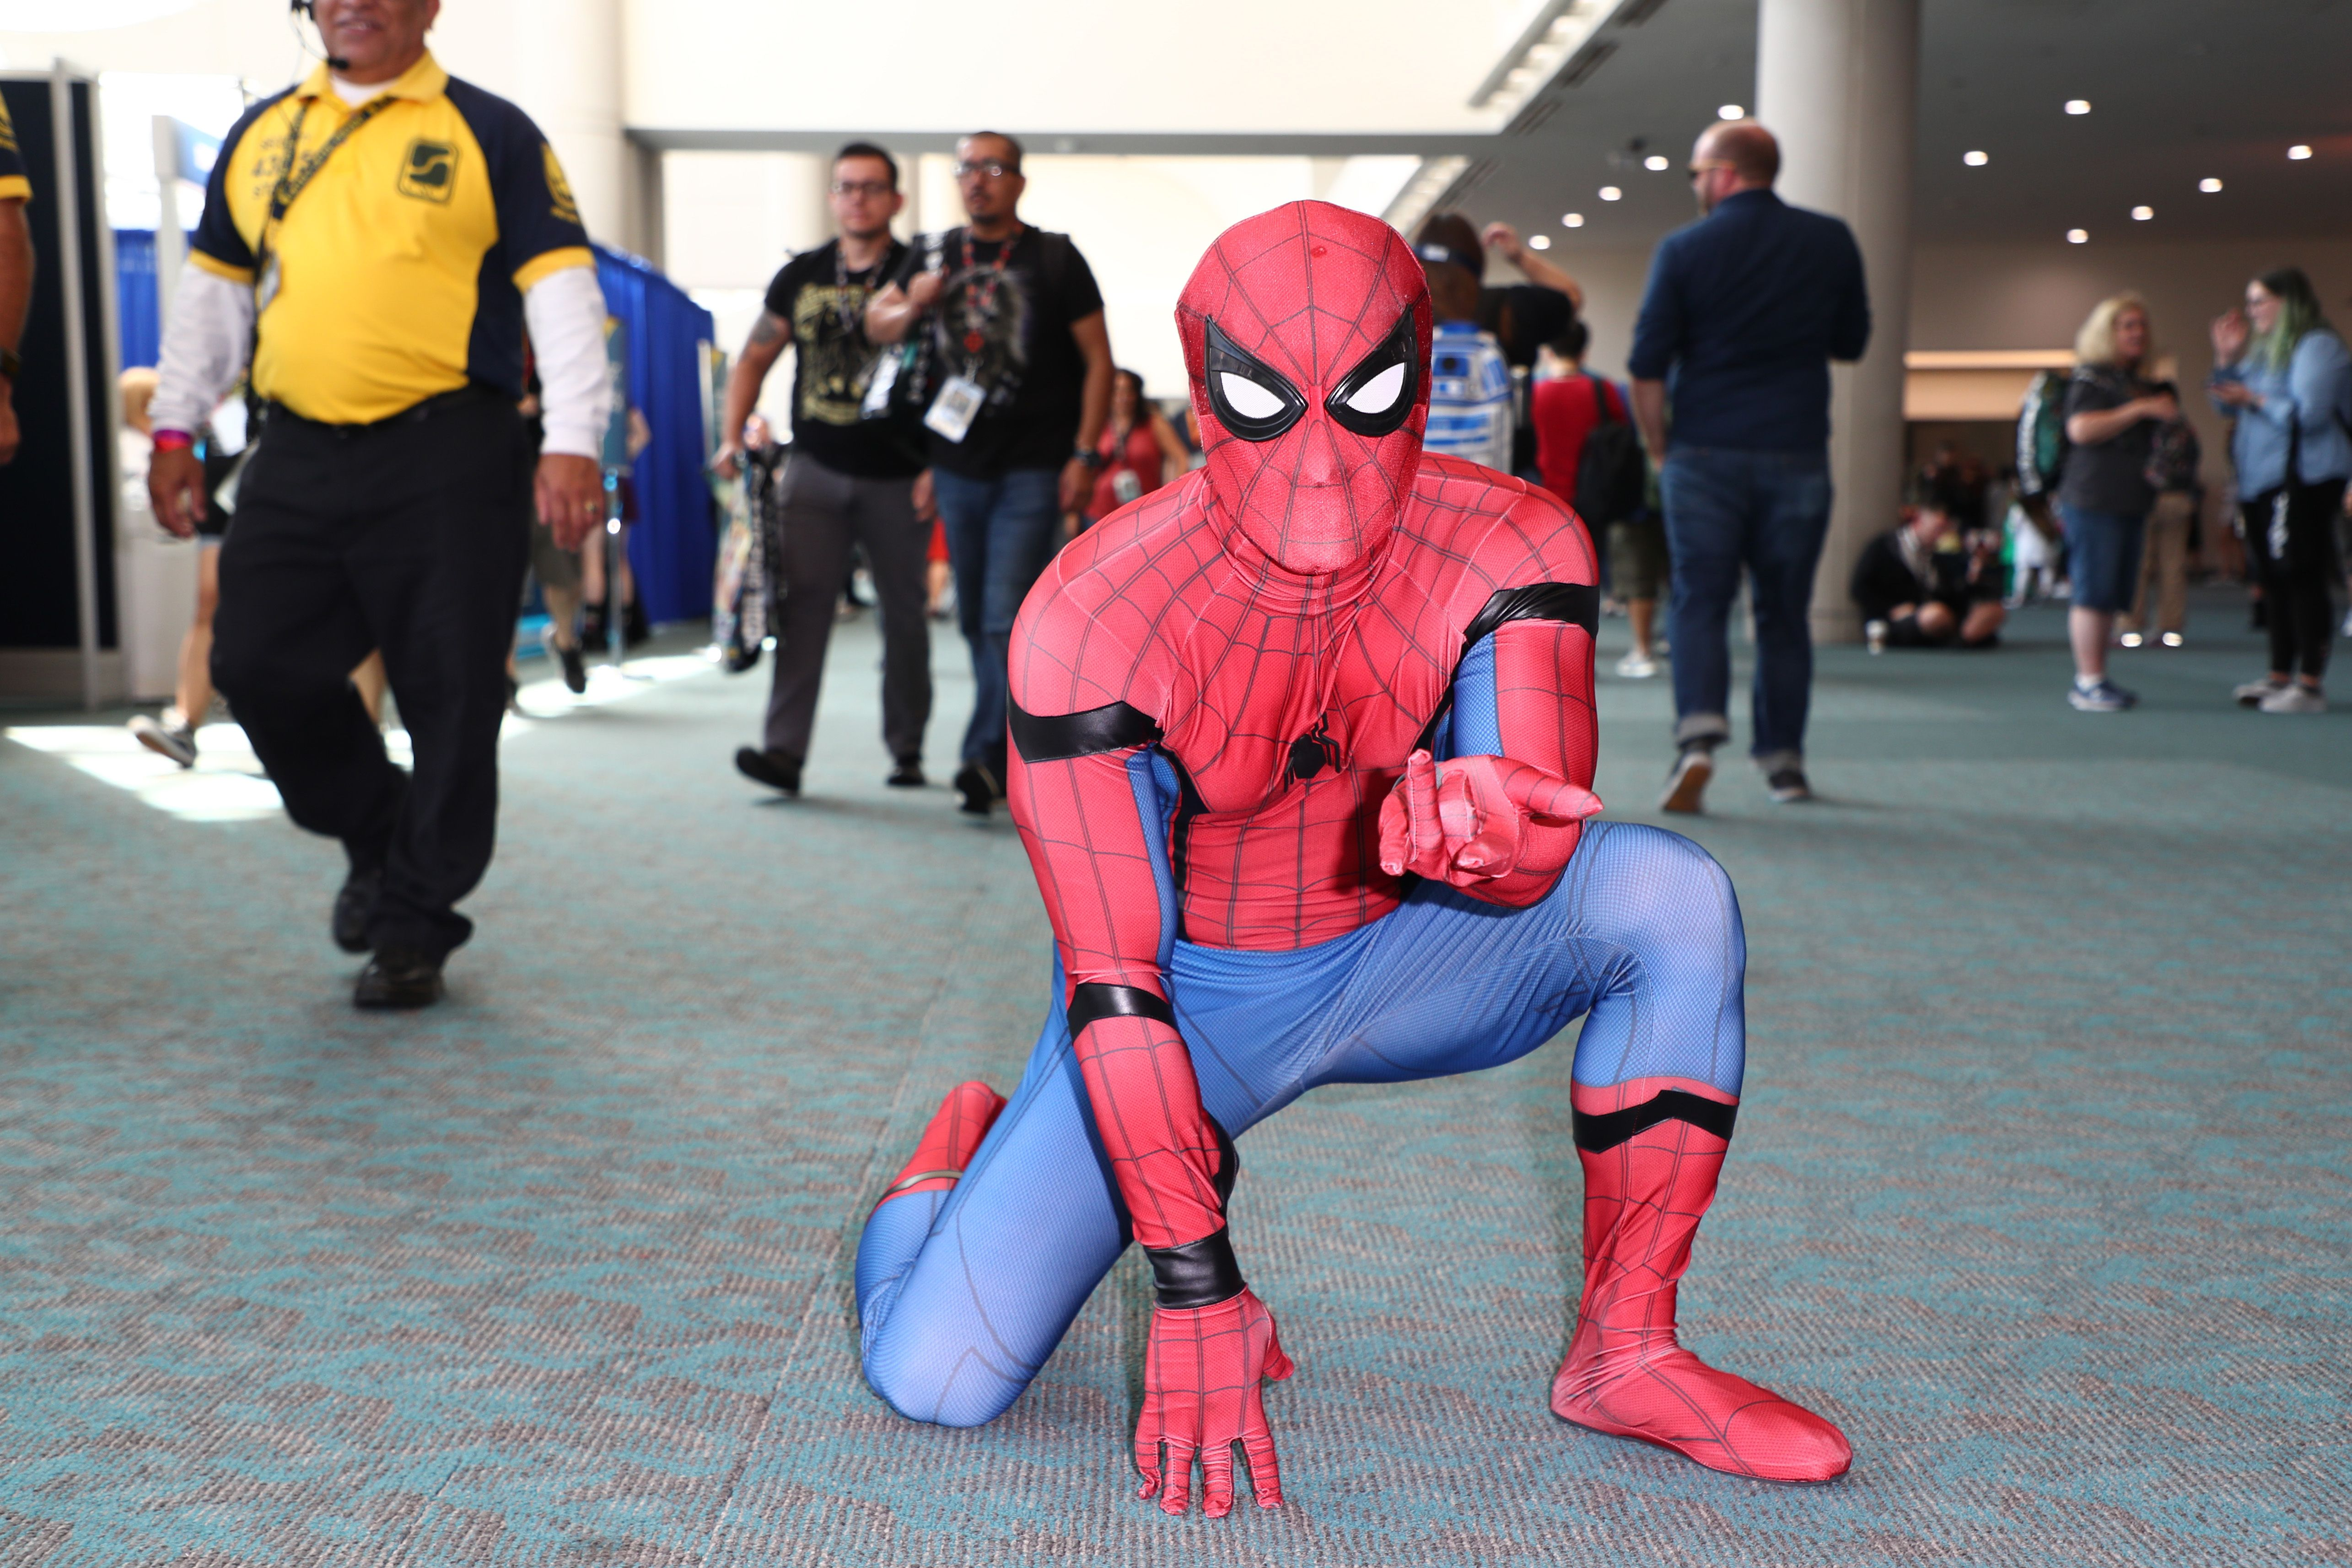 The Best Cosplay Pictures From San Diego Comic Con 2019